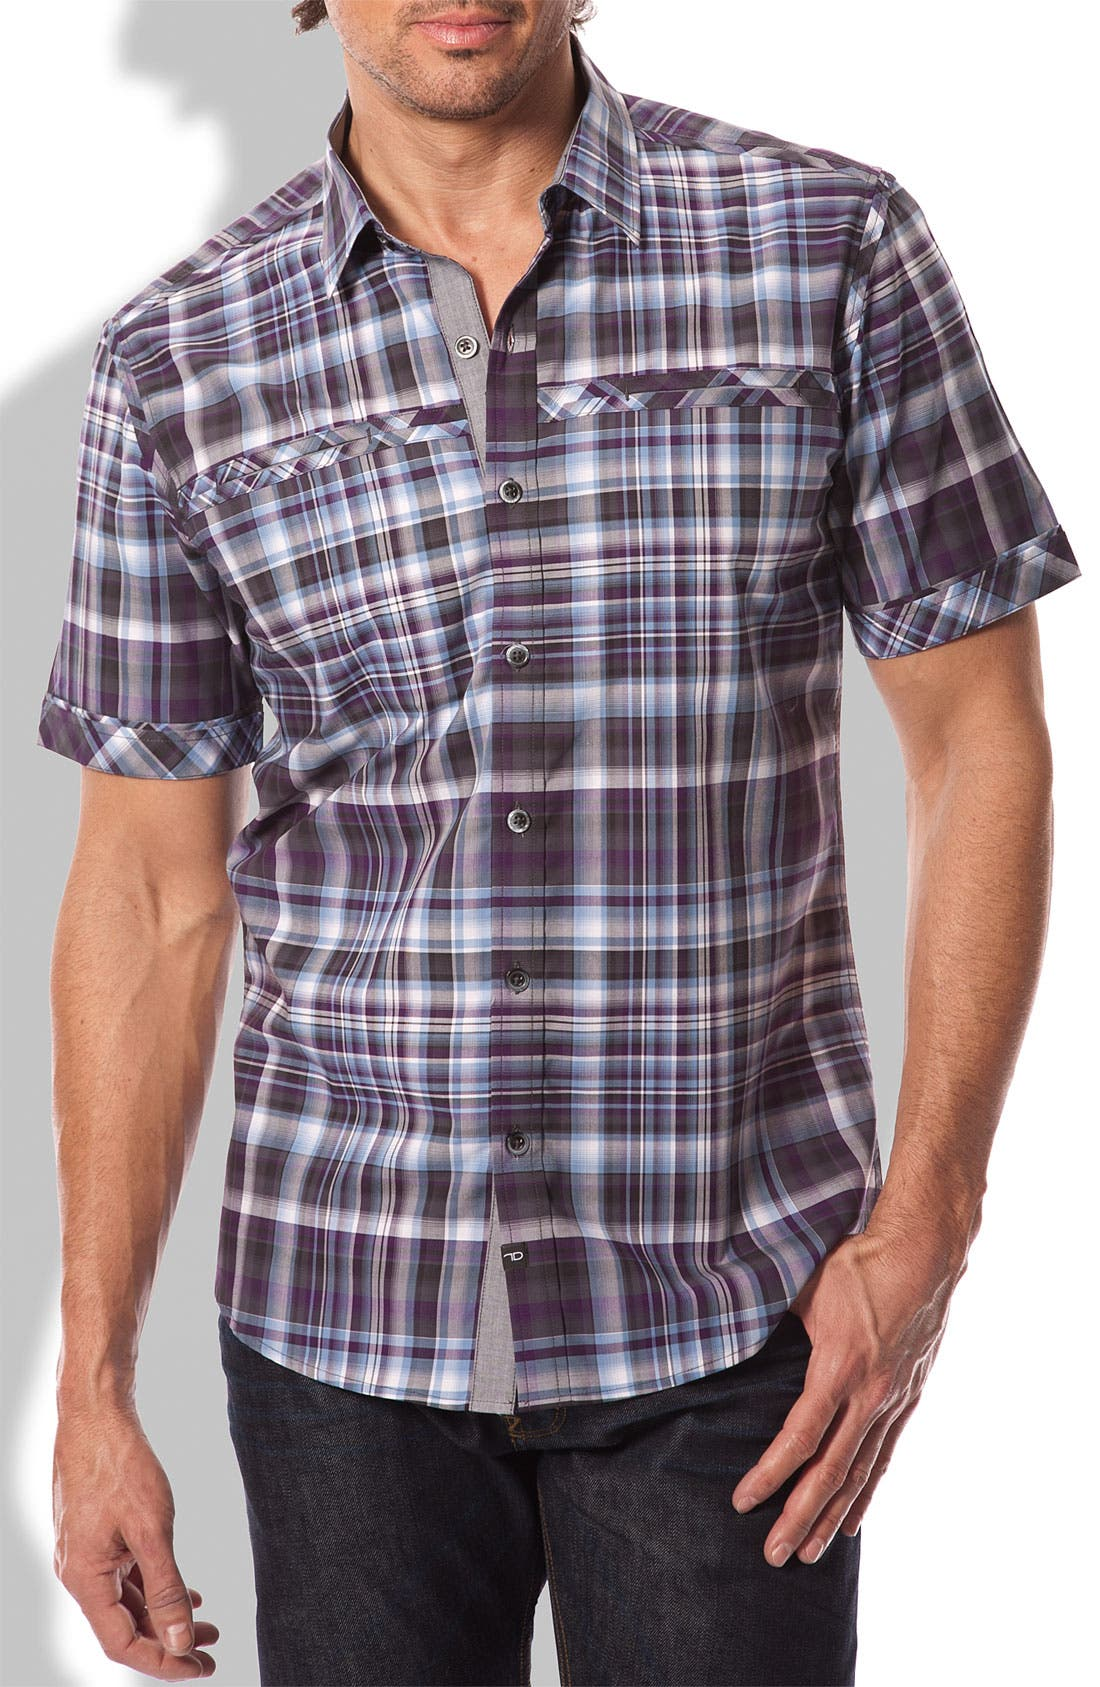 Alternate Image 1 Selected - 7 Diamonds 'Iridescent' Plaid Woven Short Sleeve Shirt